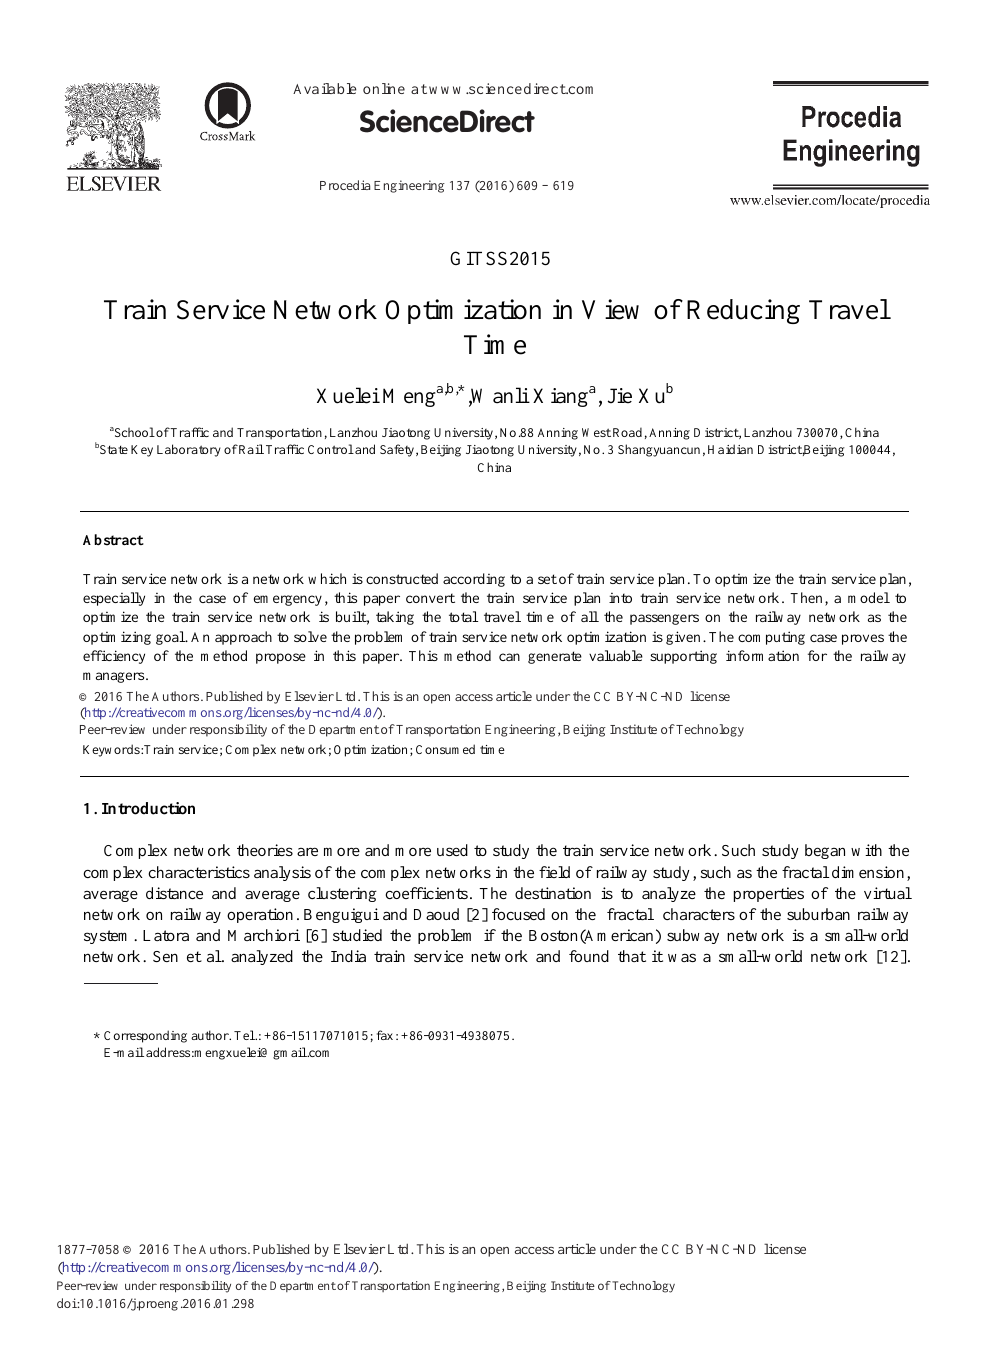 Train Service Network Optimization in View of Reducing Travel Time